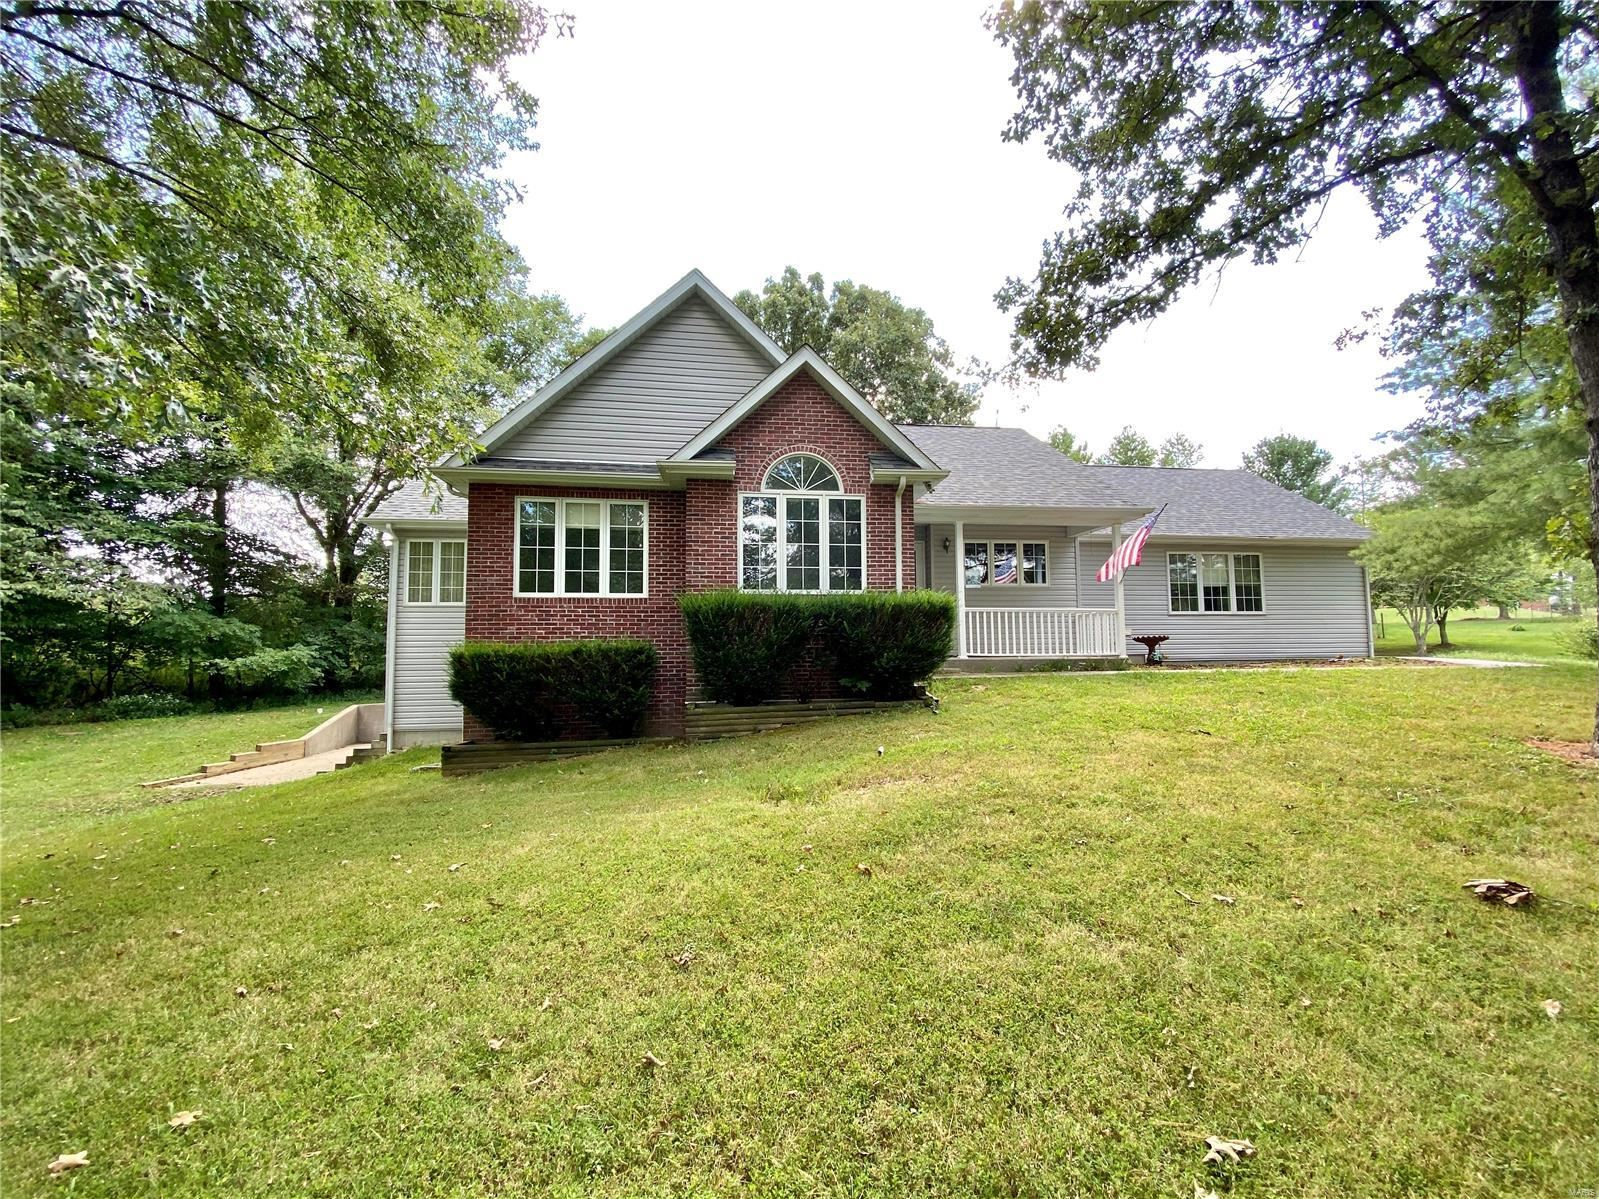 Photo of 5 Country Lake Drive, Perryville, MO 63775 (MLS # 21065899)